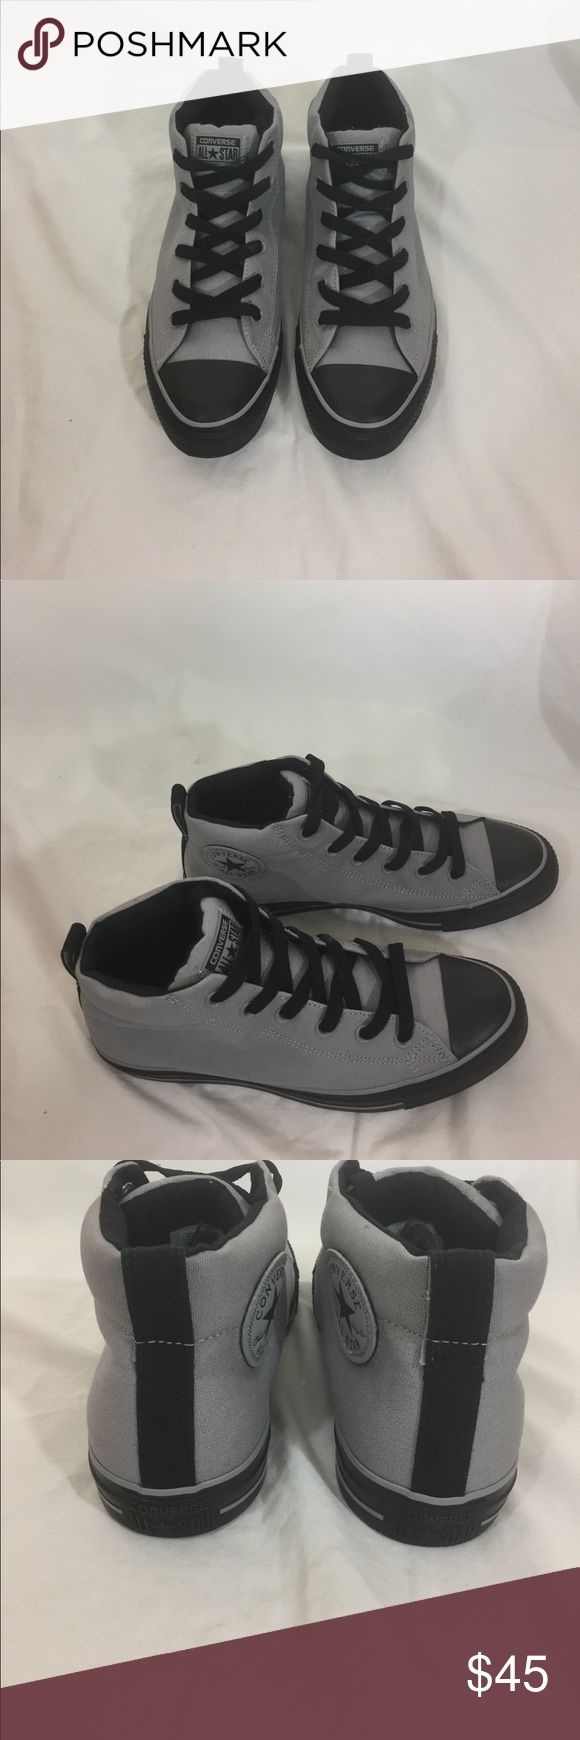 Converse high tops gray and black size 10 Brand-new with box, box does not have a lid Converse Shoes Athletic Shoes